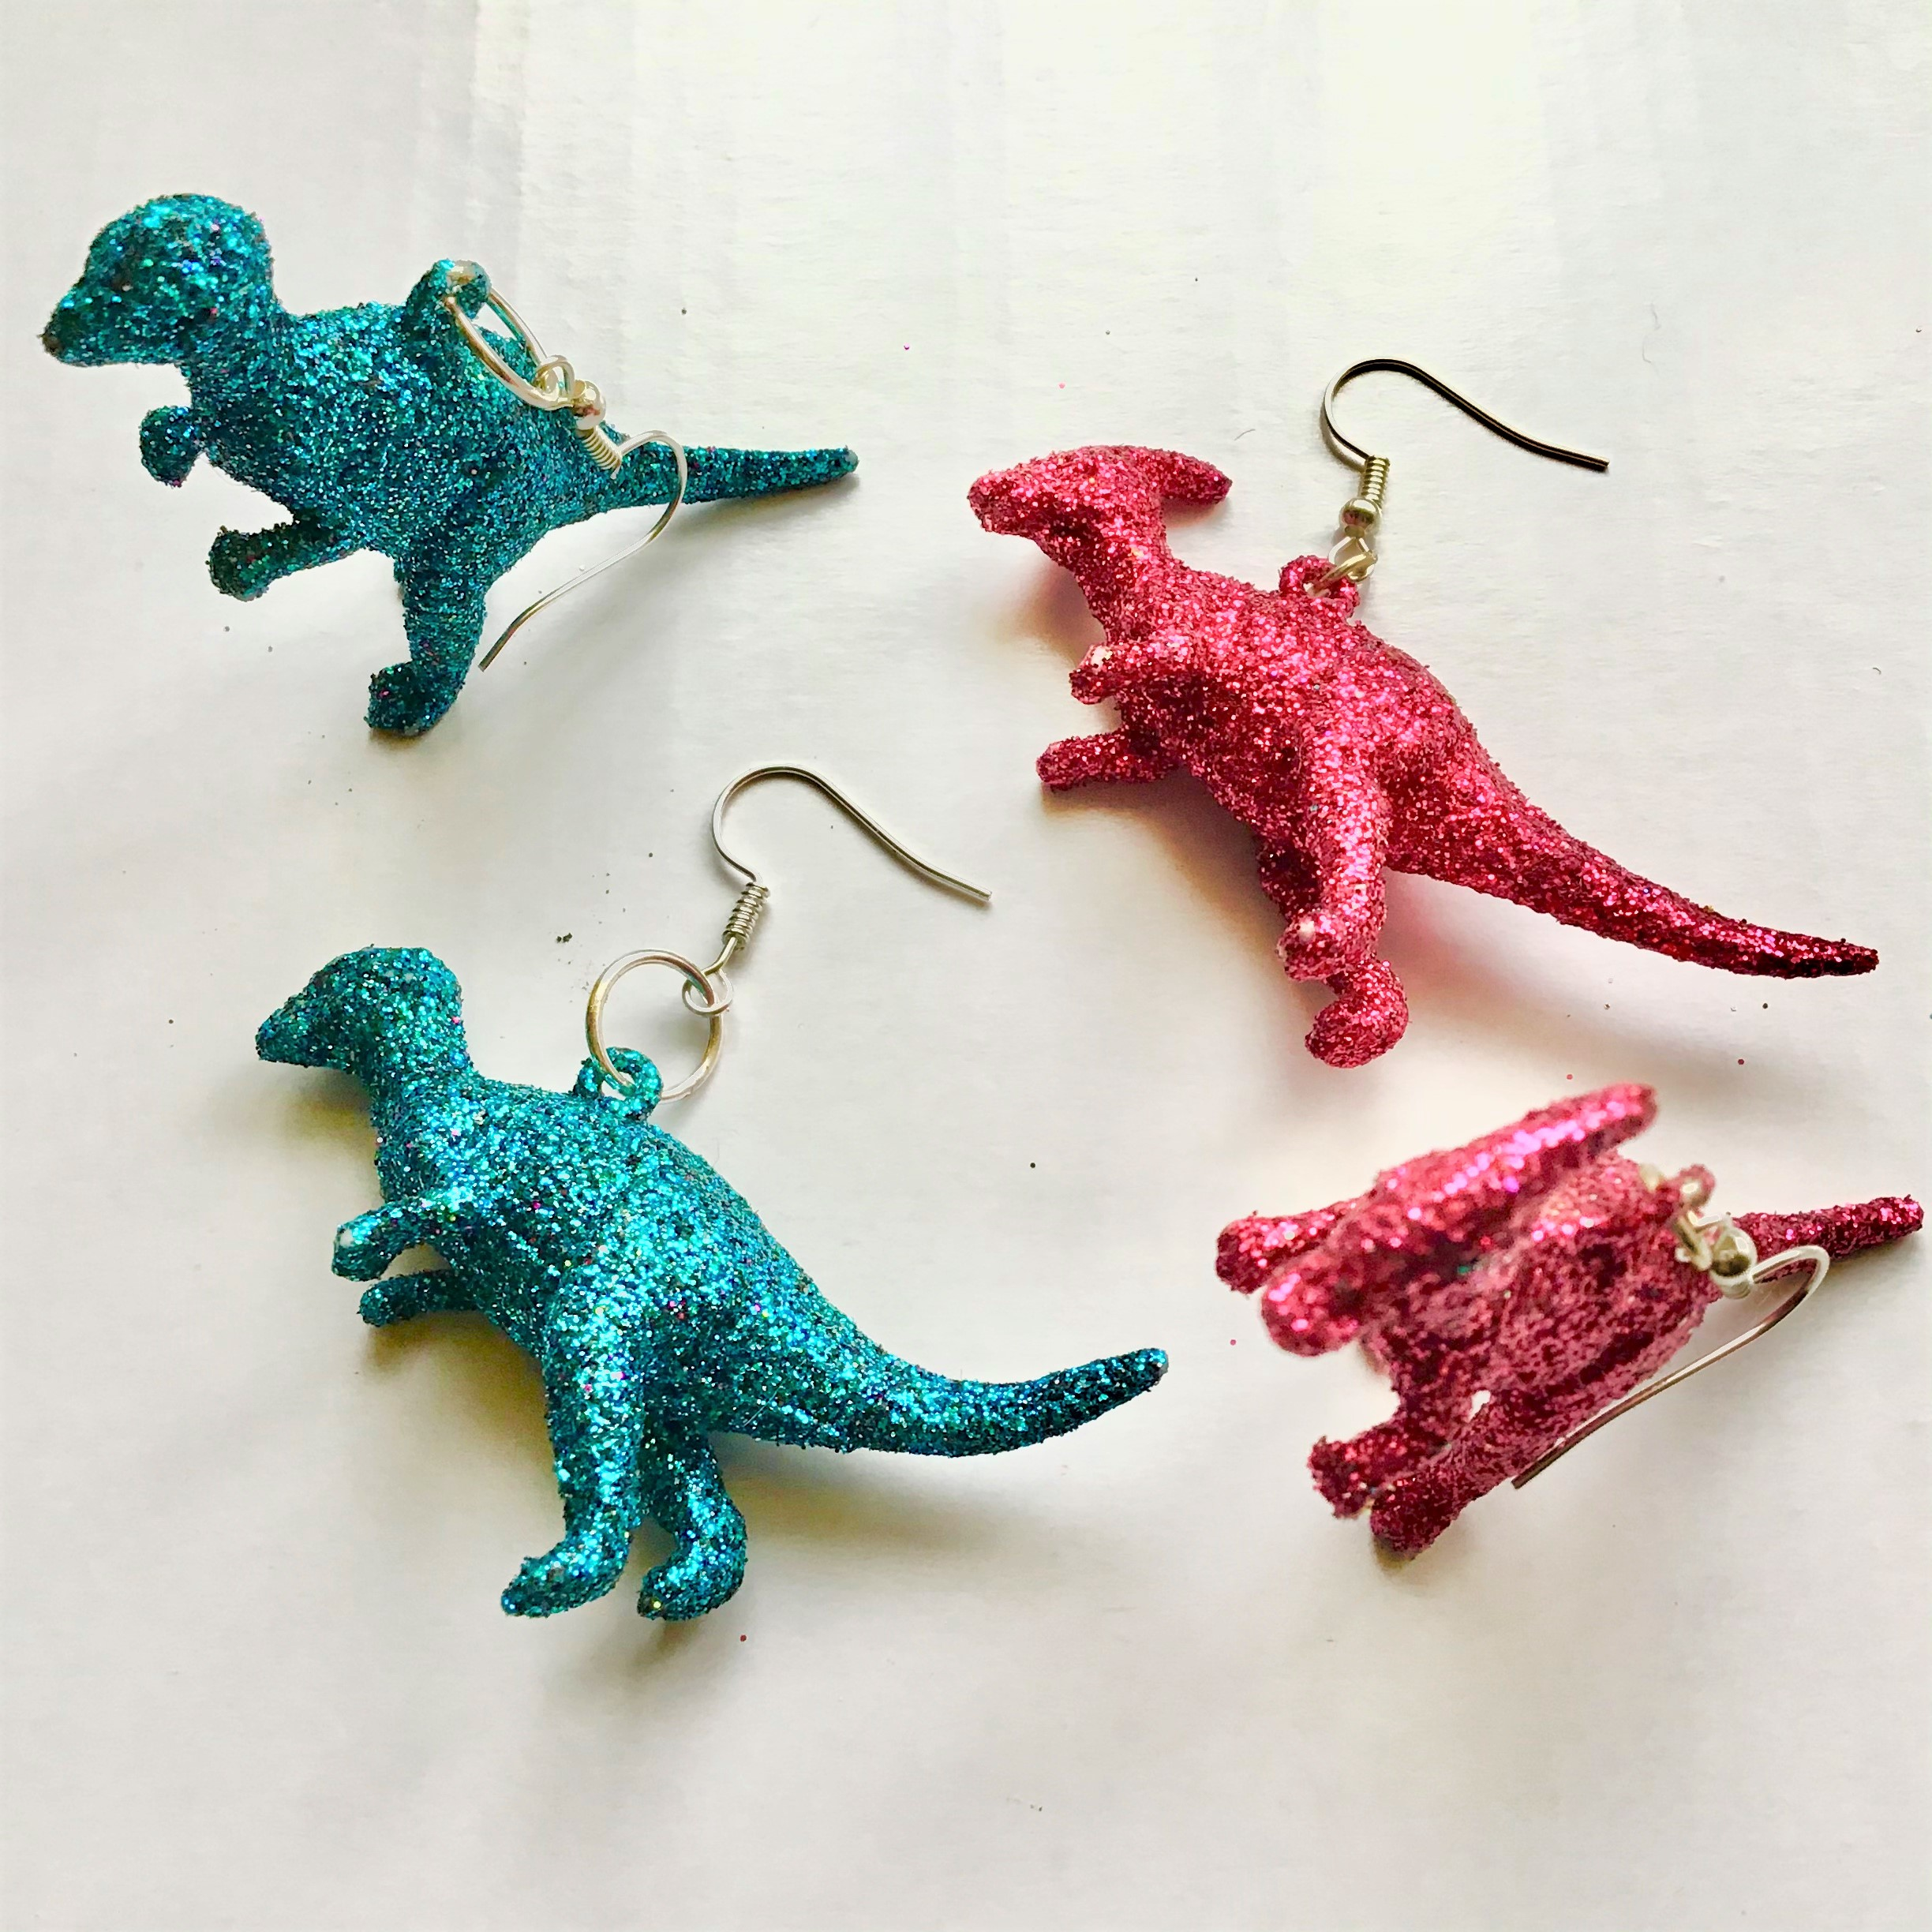 Glitter Dinosaur Earrings DIY - Short Versions